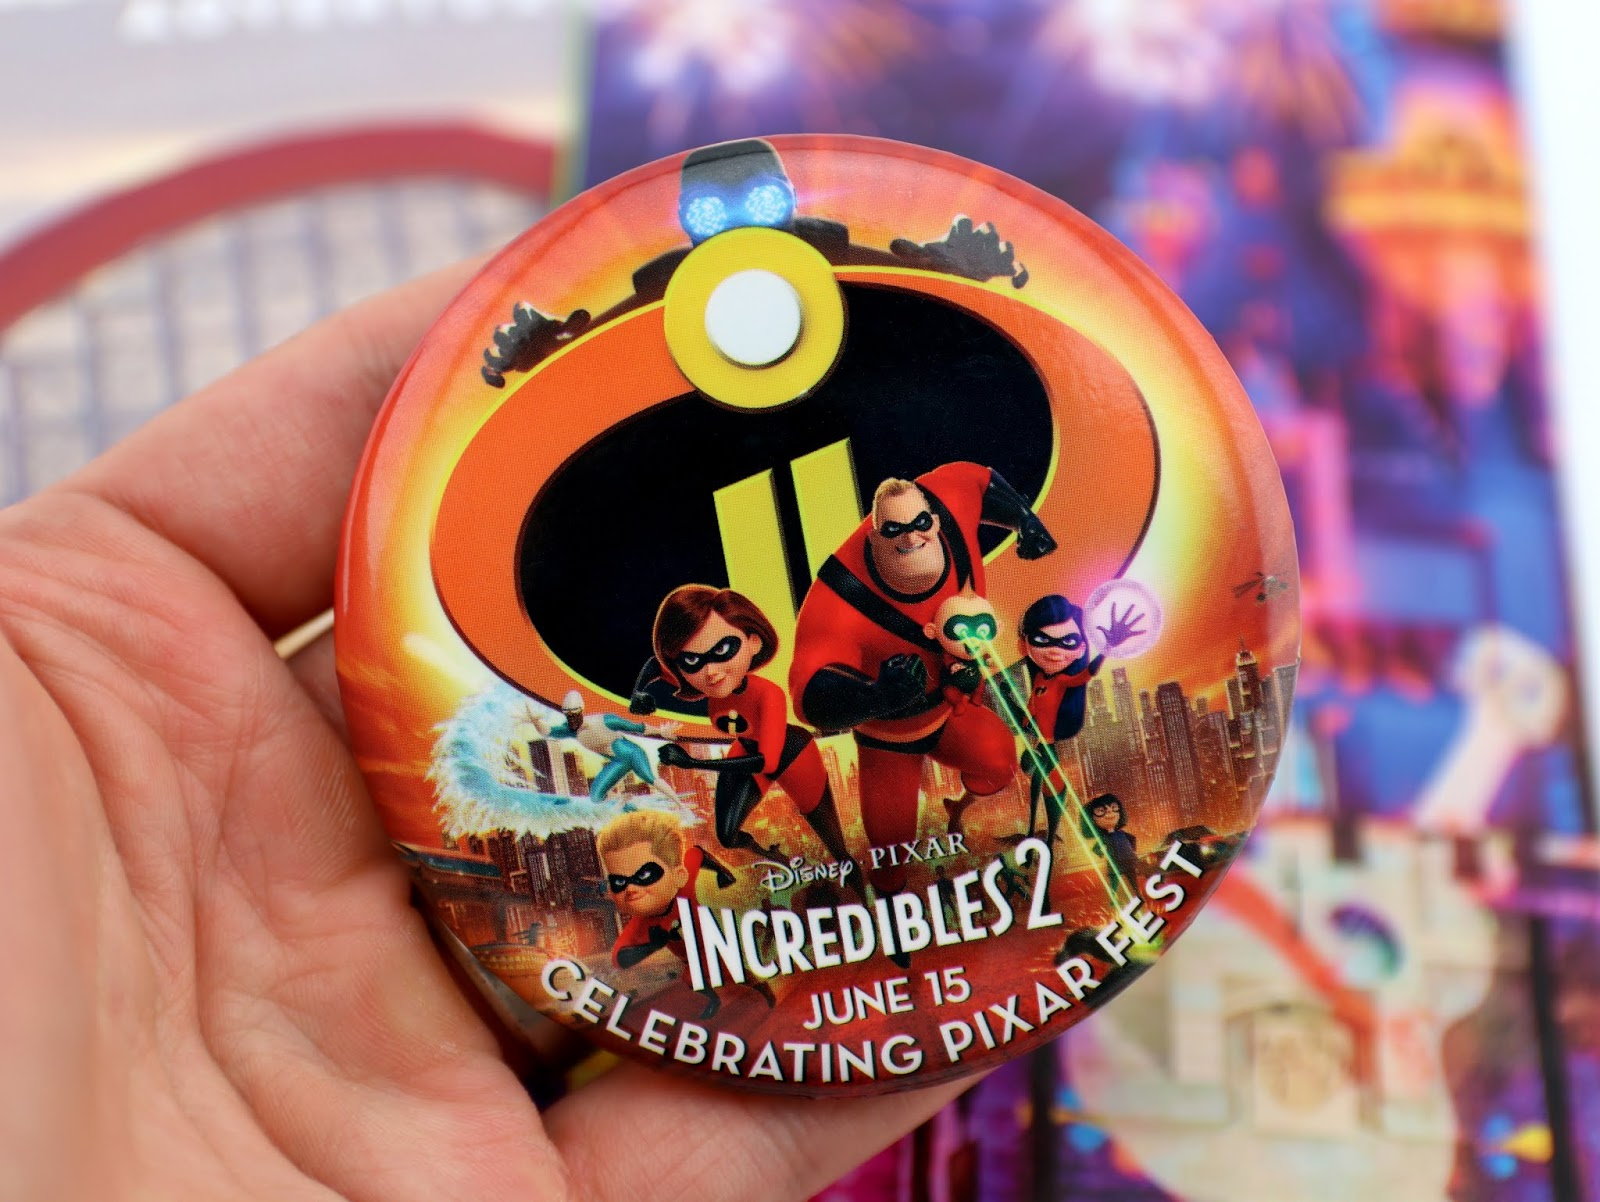 disneyland incredibles 2 release day promo button